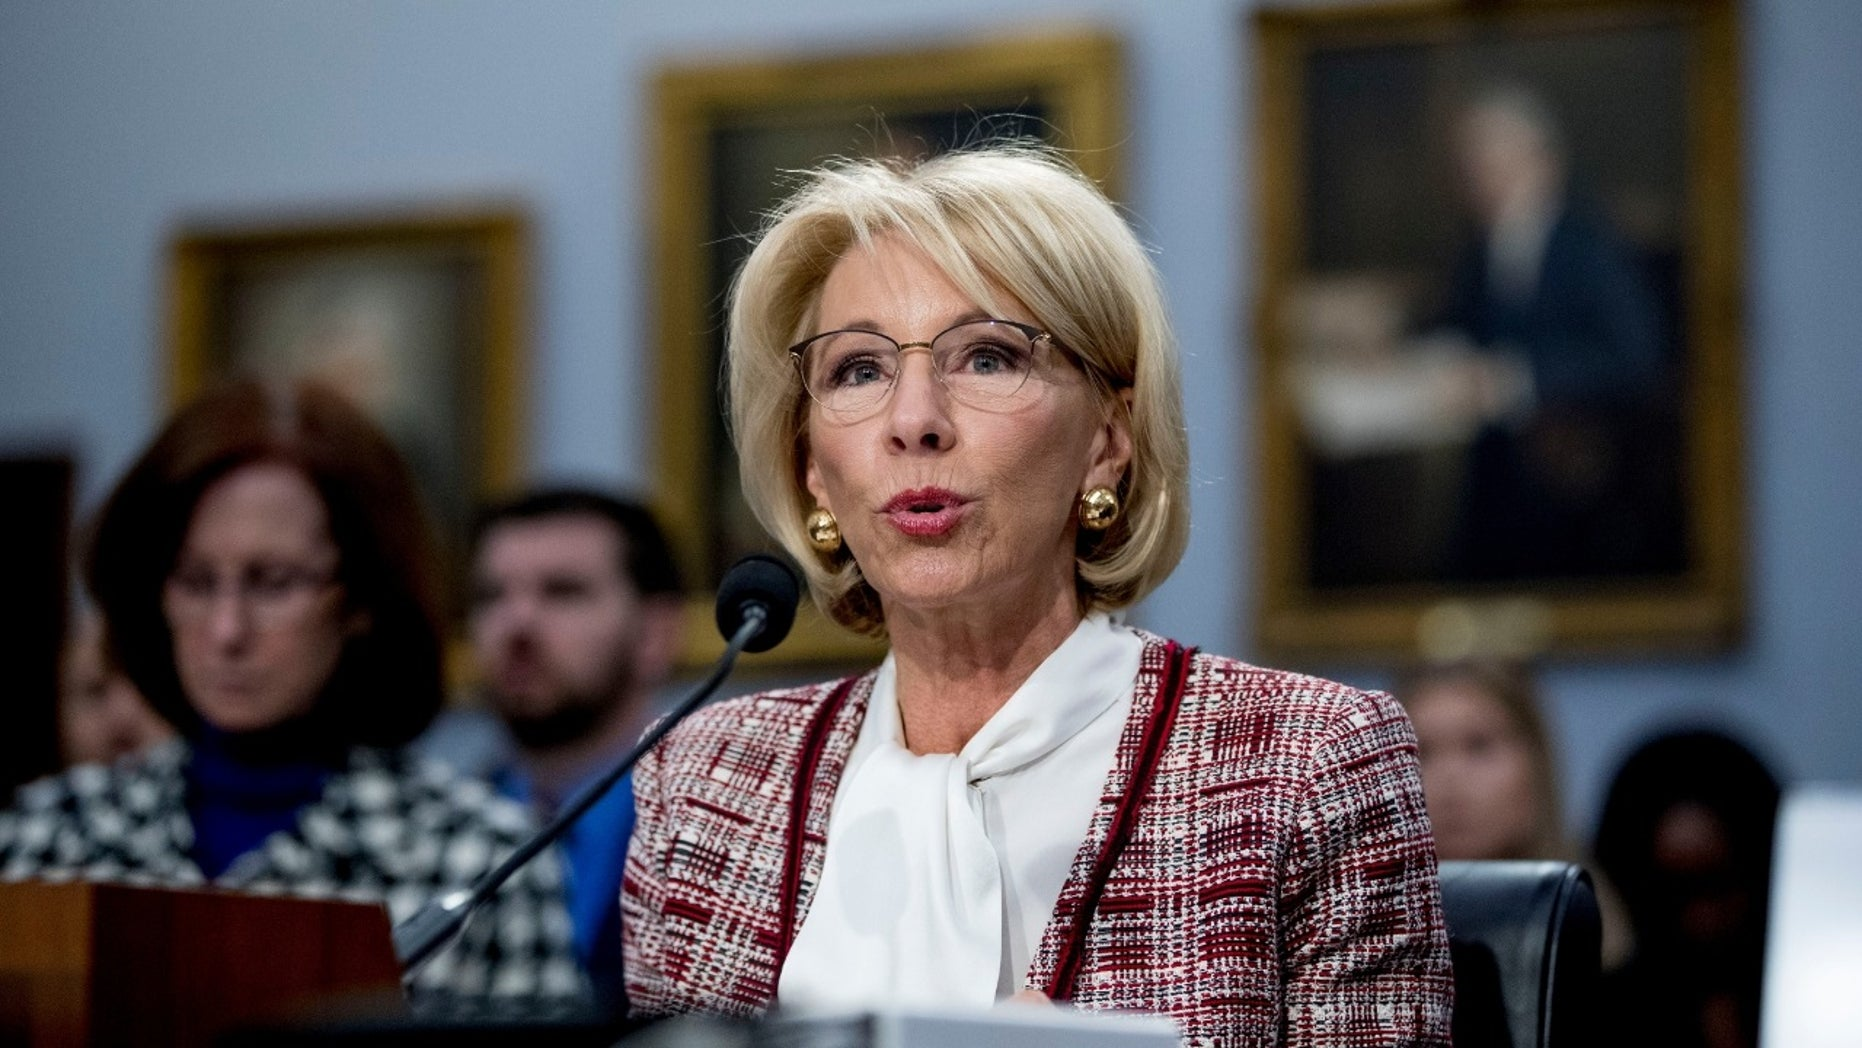 ESPN personalities took to Twitter to criticize Education Secretary Betsy DeVos after her budget proposal would cut funding for the Special Olympics.